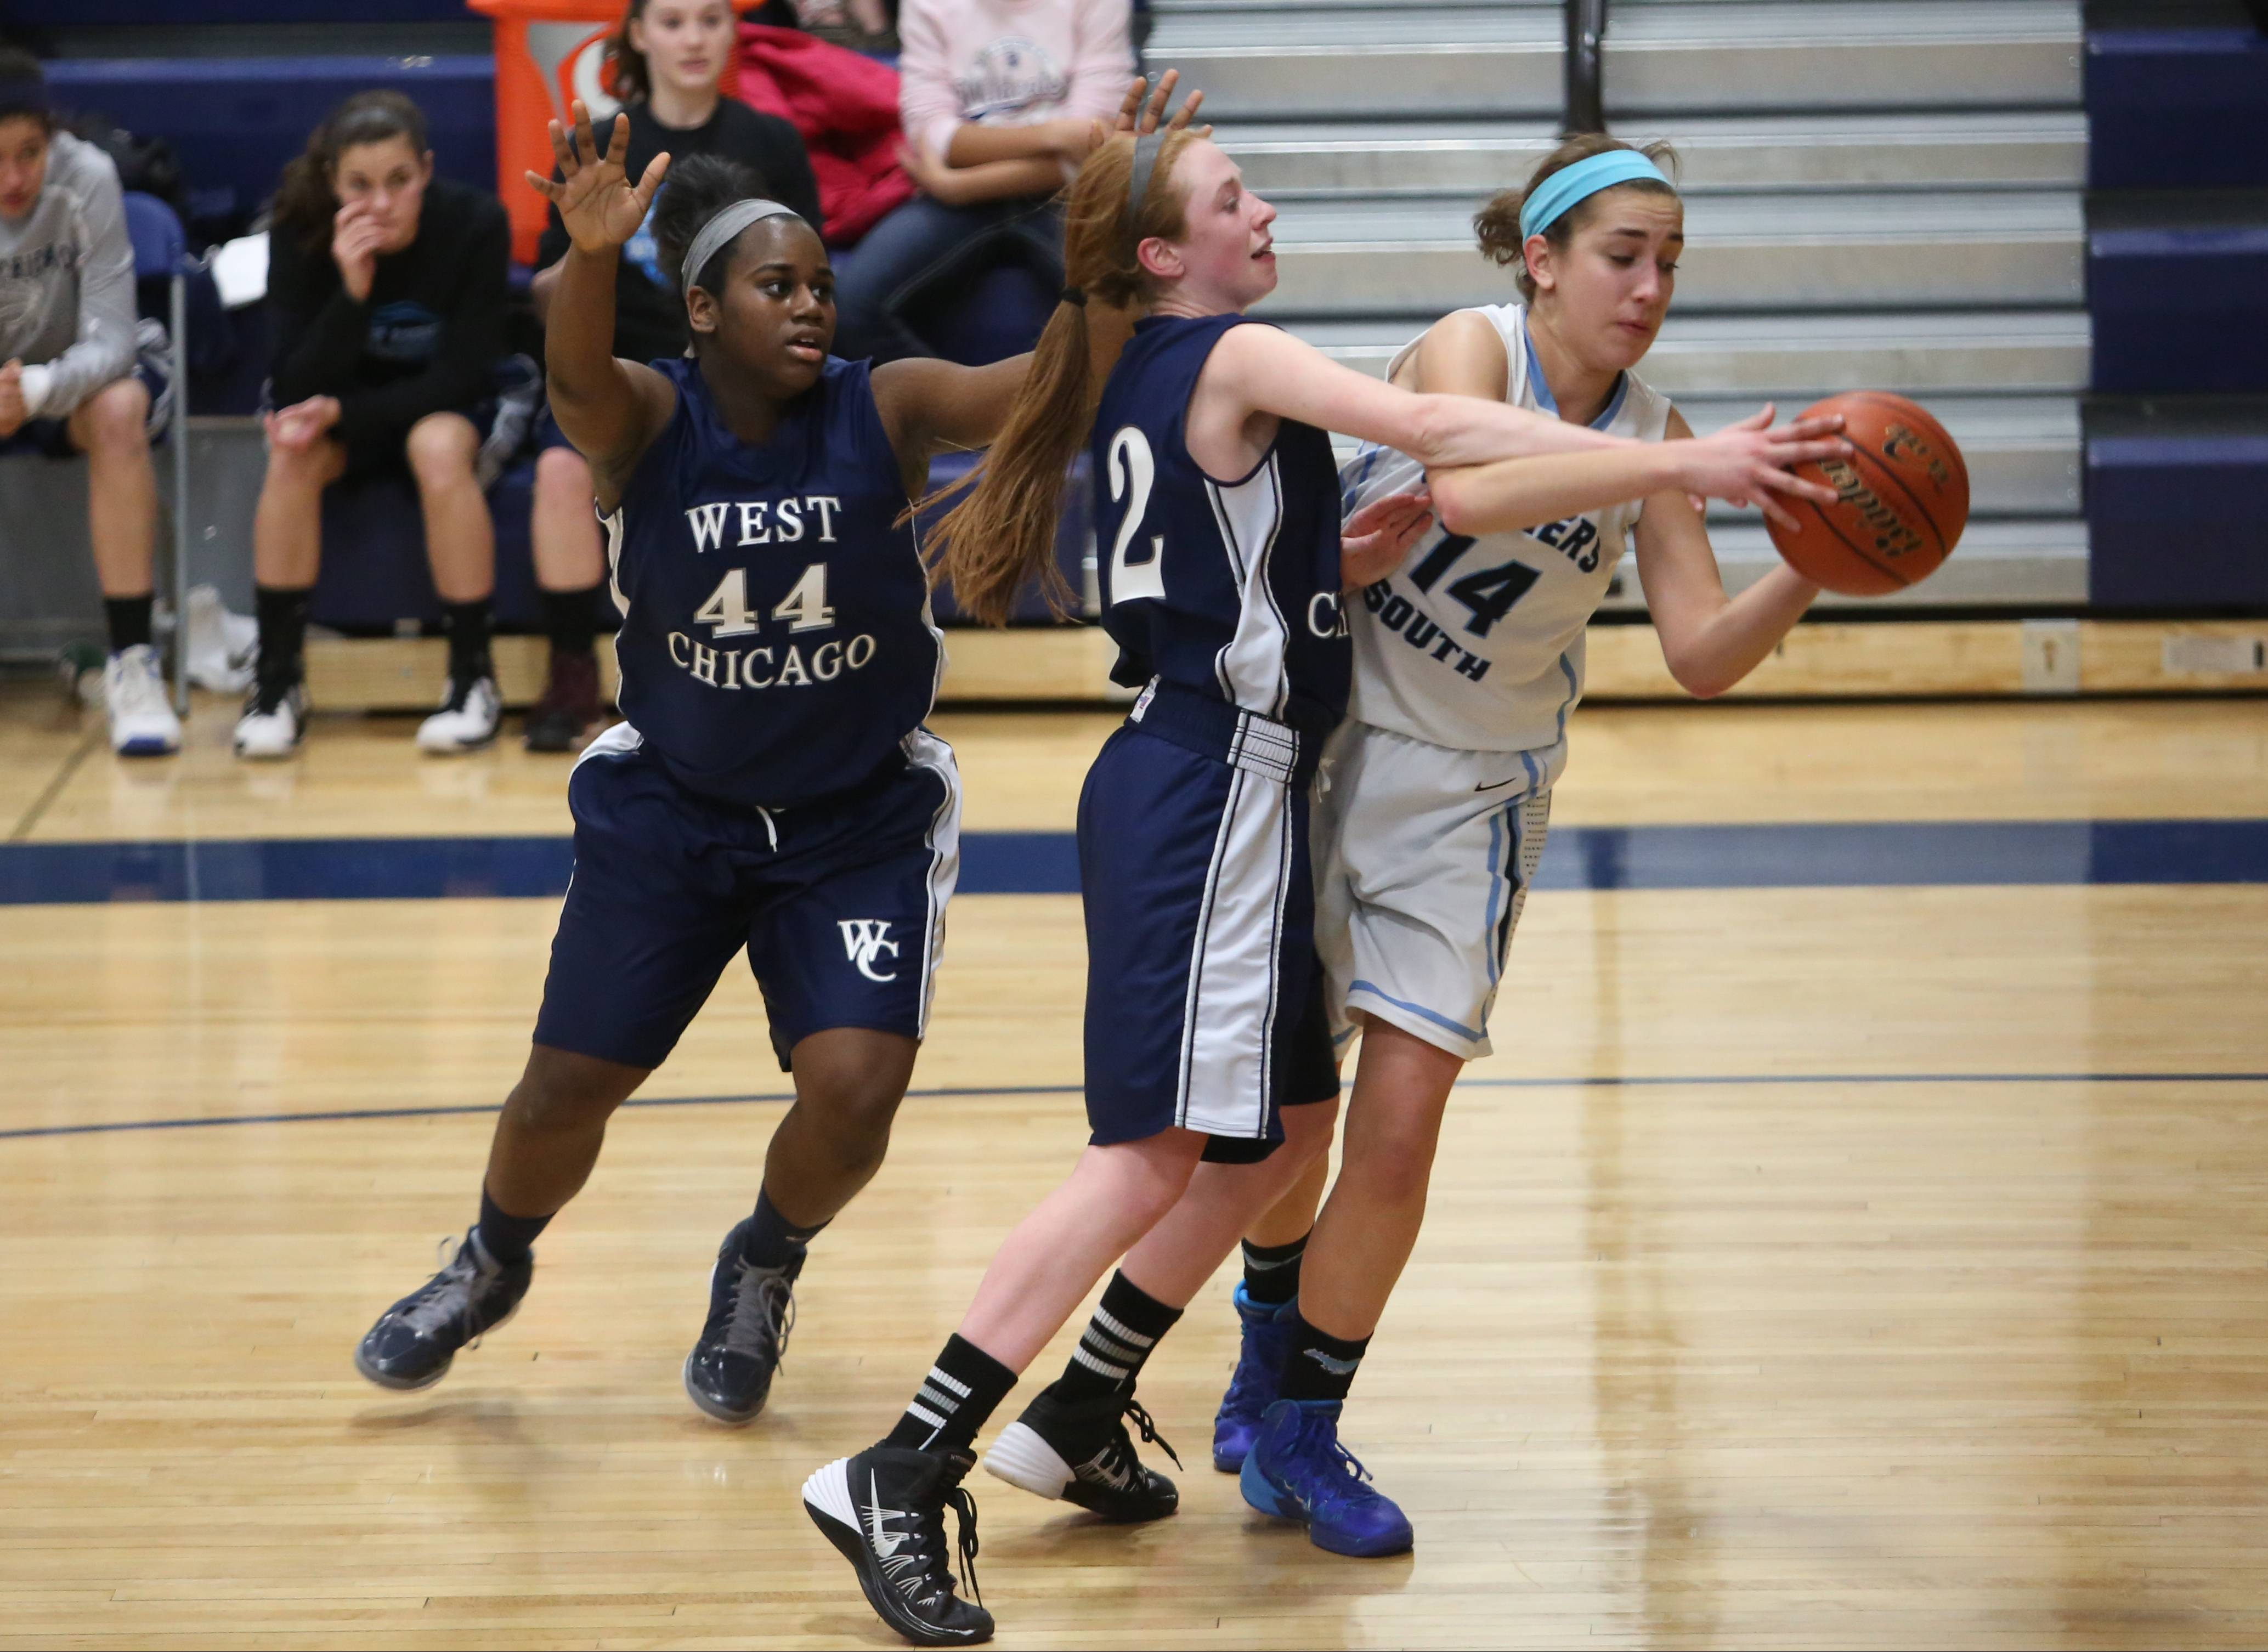 Photos from the West Chicago vs. Downers Grove South girls basketball game Monday, Feb. 17 at Wheaton North High School.